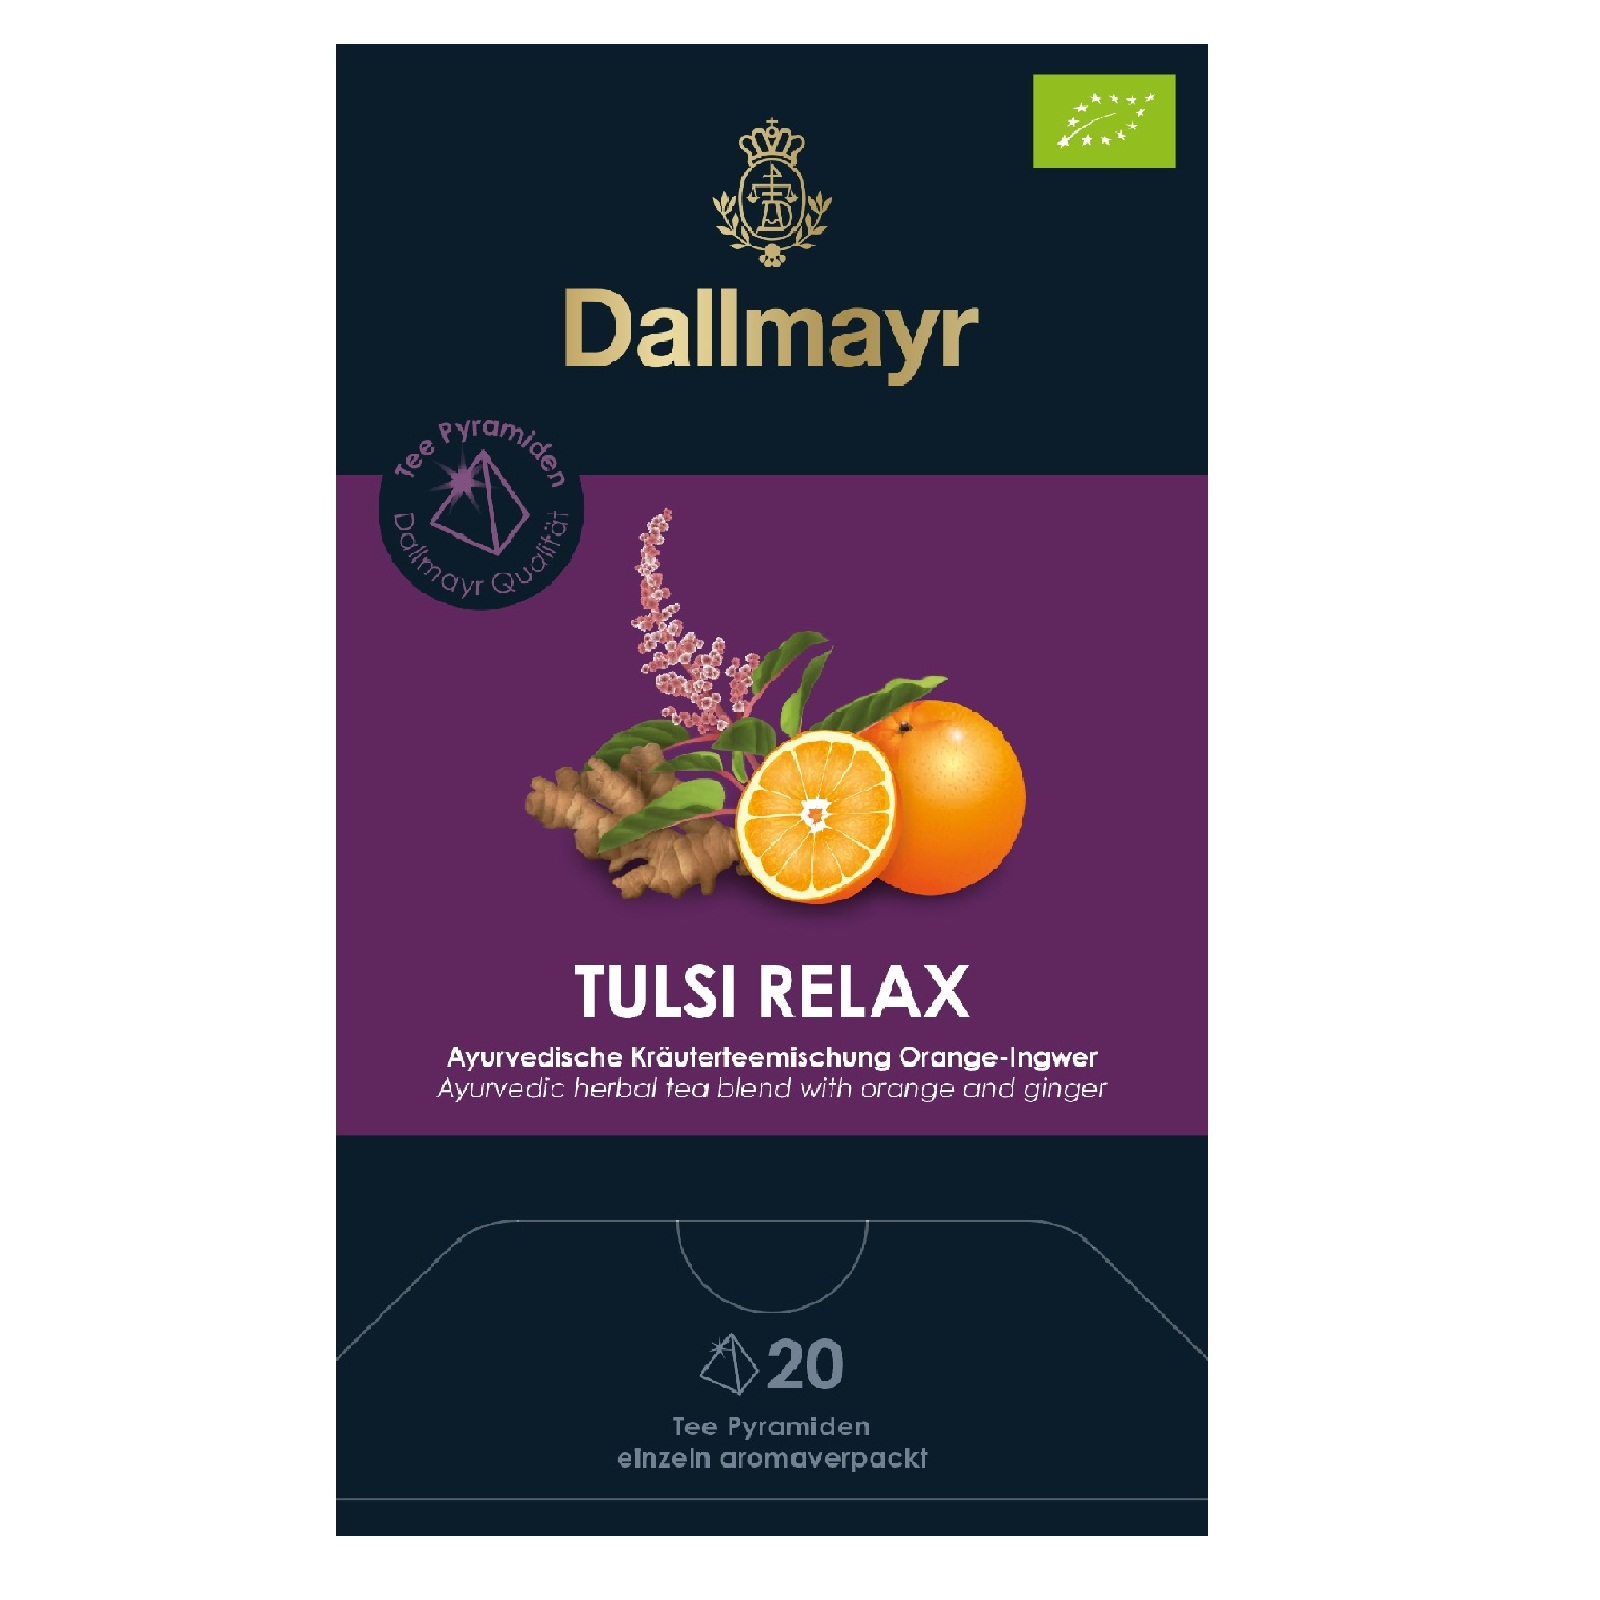 dallmayr tulsi relax bio ingwer orange 20 pyramiden x 2 5g. Black Bedroom Furniture Sets. Home Design Ideas